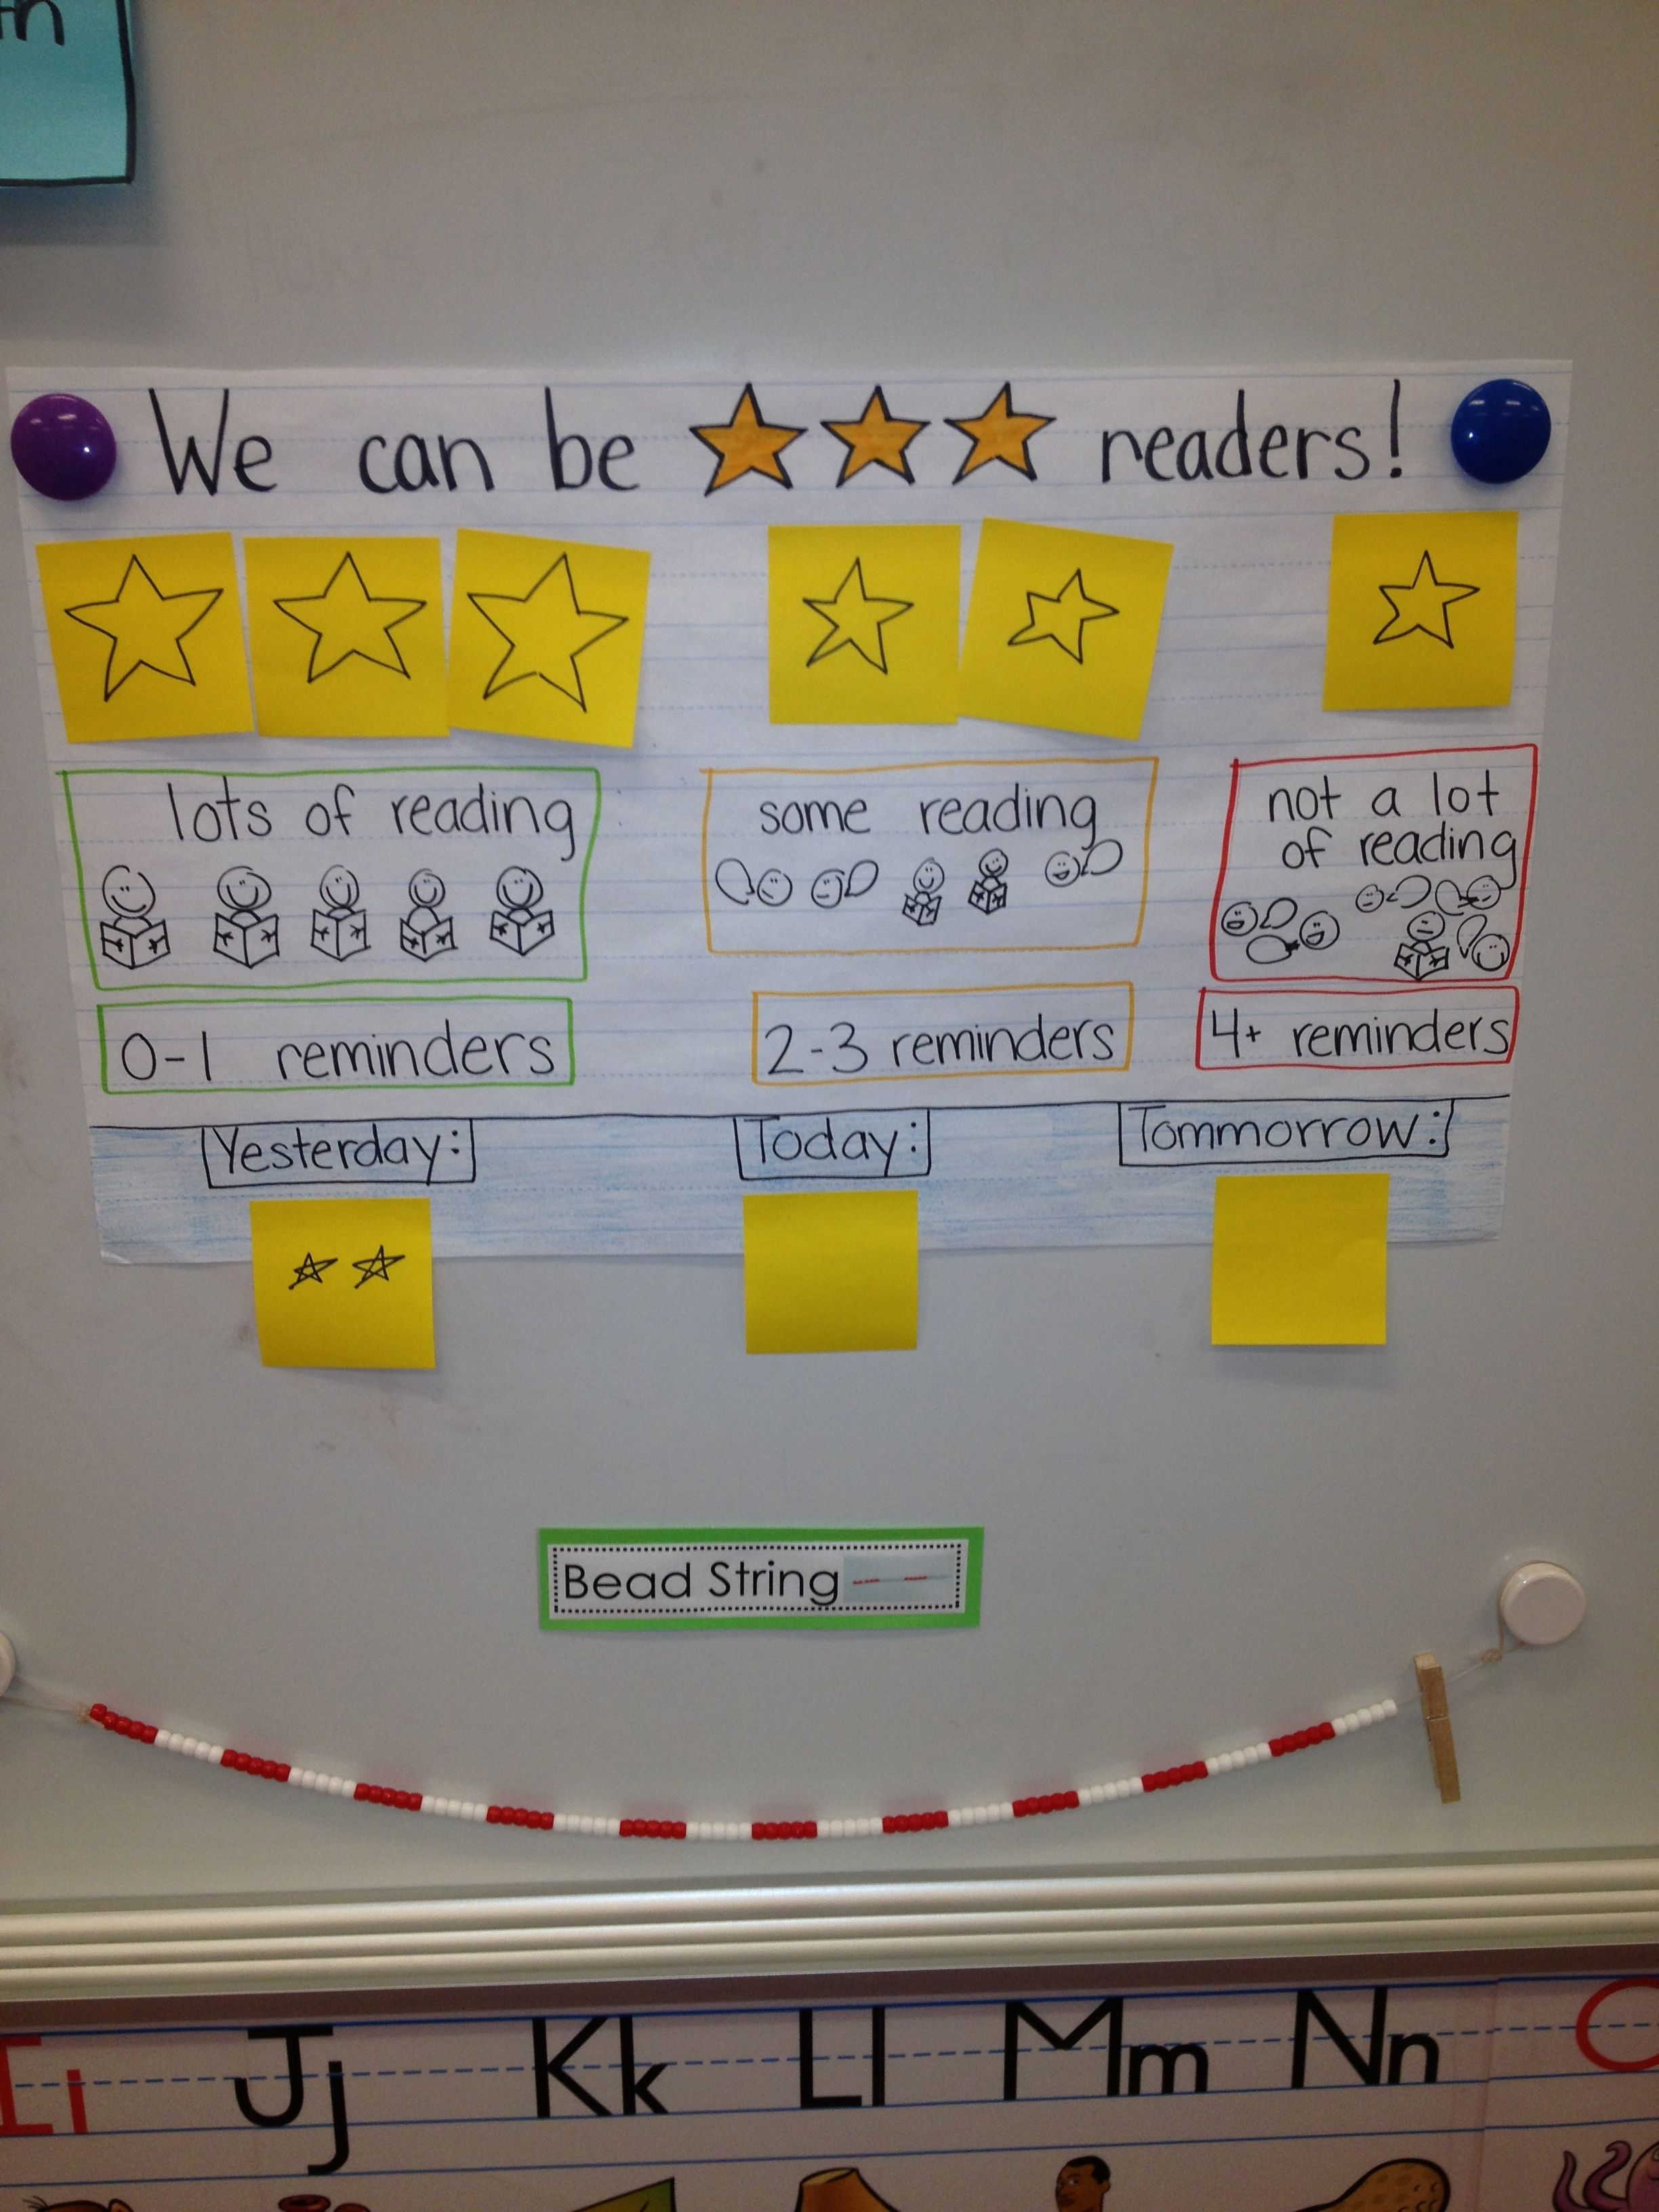 Independent reading time management and goals!